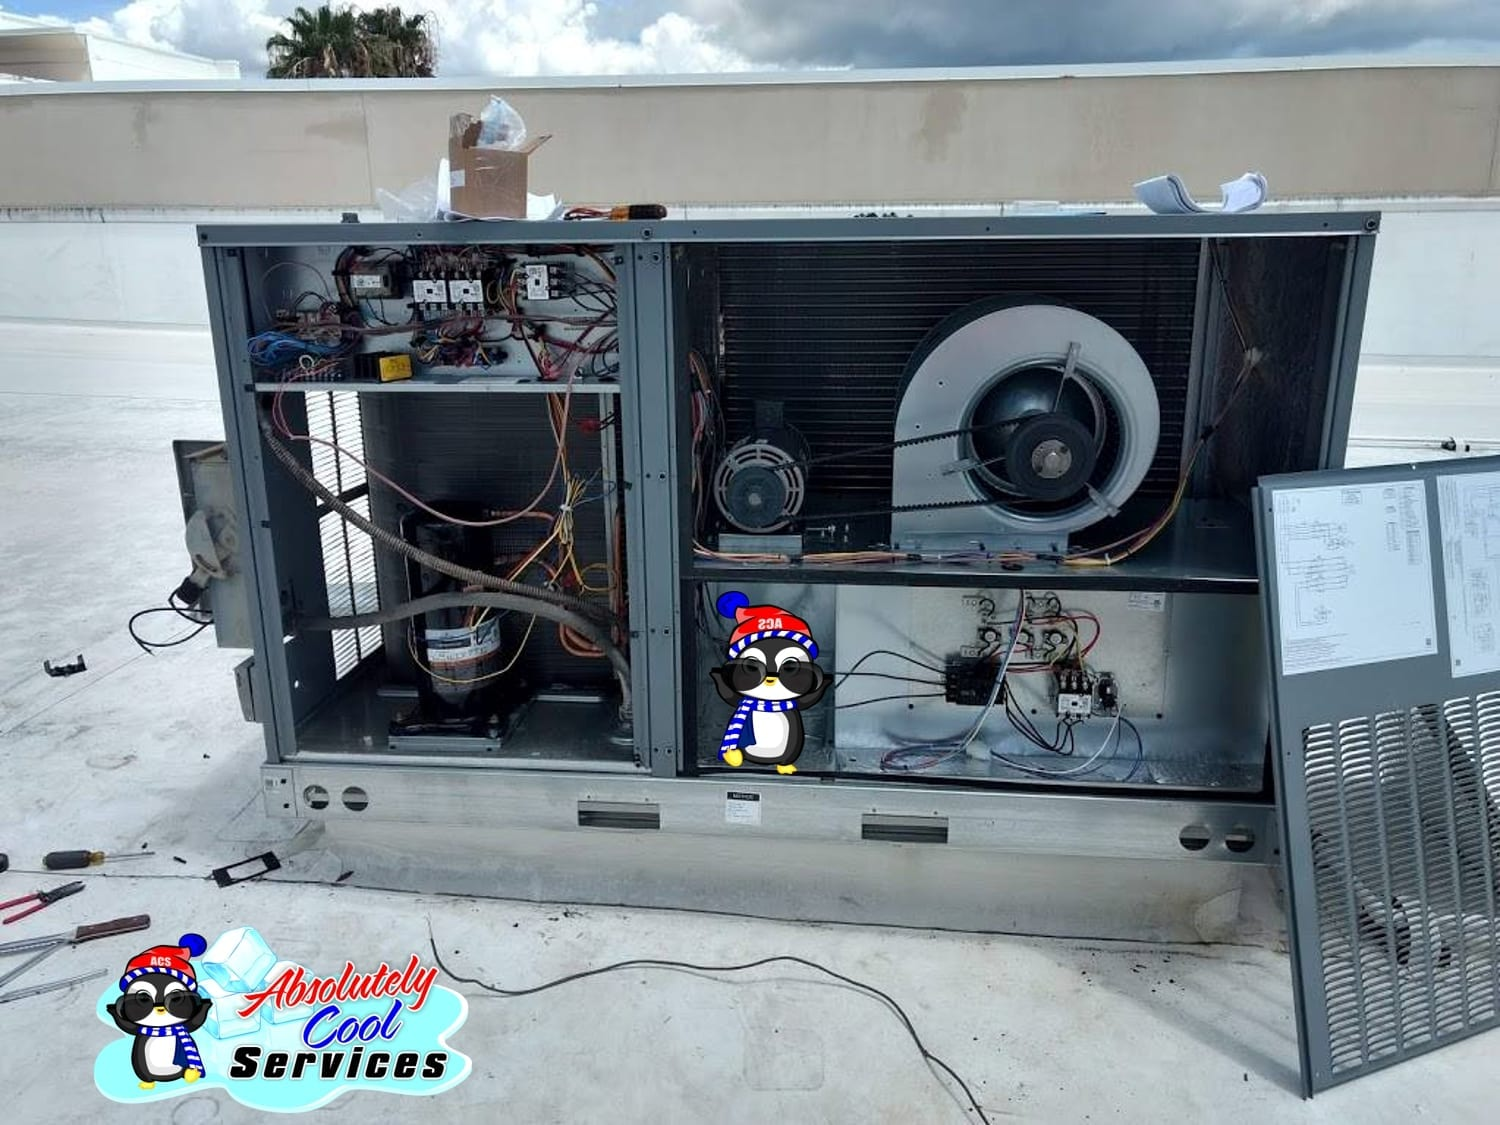 Roof Air Conditioning | Air Conditioning Maintenance Service near Lake Worth